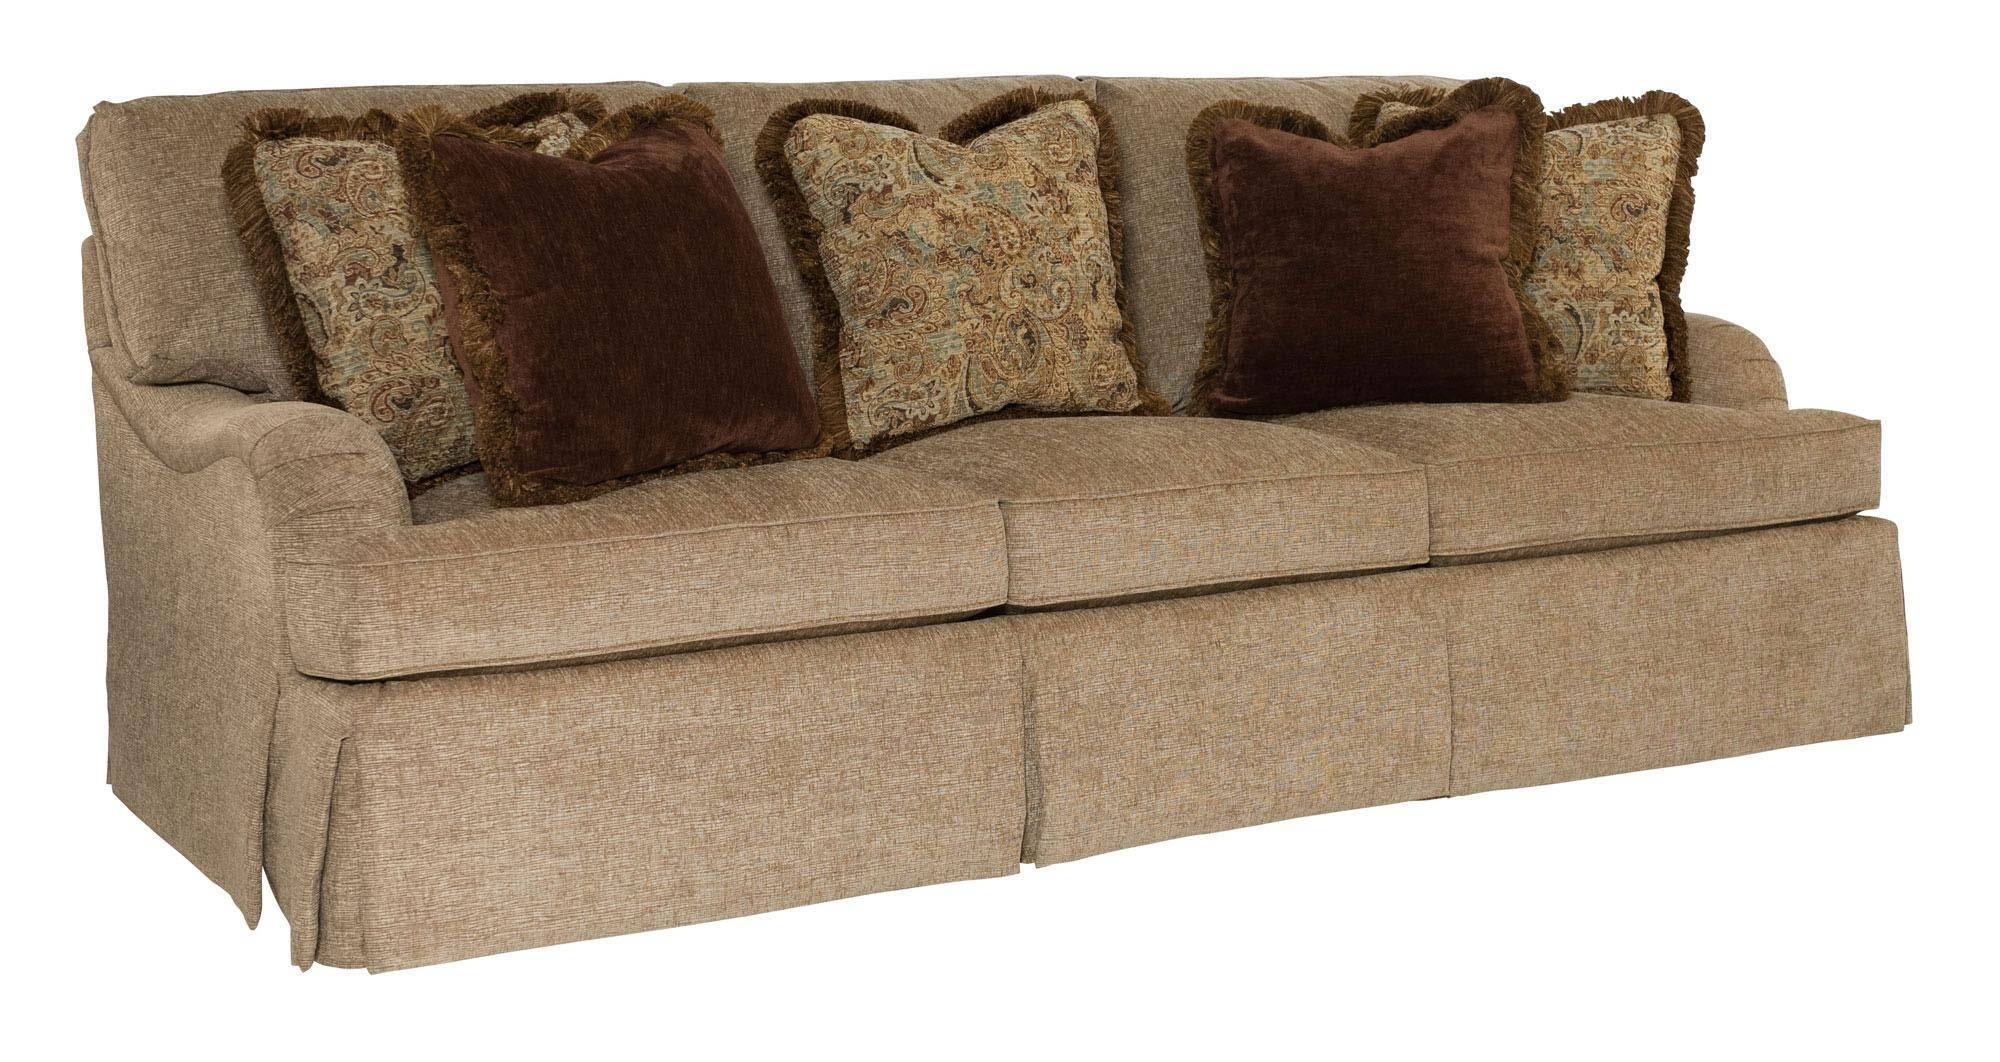 20+ Choices Of Slumberland Sofas | Sofa Ideas pertaining to Slumberland Sofas (Image 5 of 15)